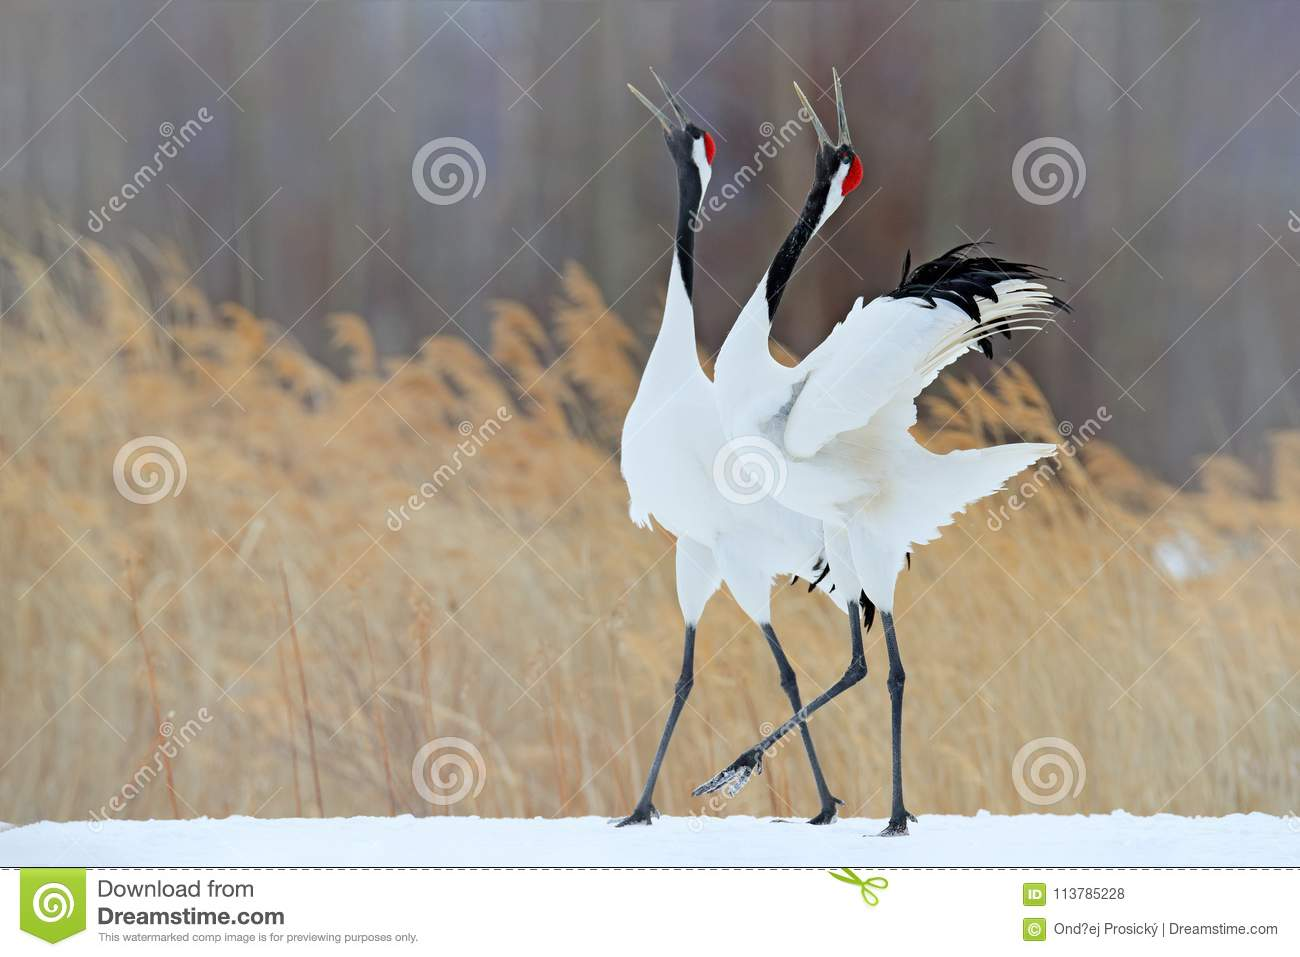 Snow dance in nature. Wildlife scene from snowy nature. Cold winter. Snowy. Snowfall two Red-crowned crane in snow meadow, with sn